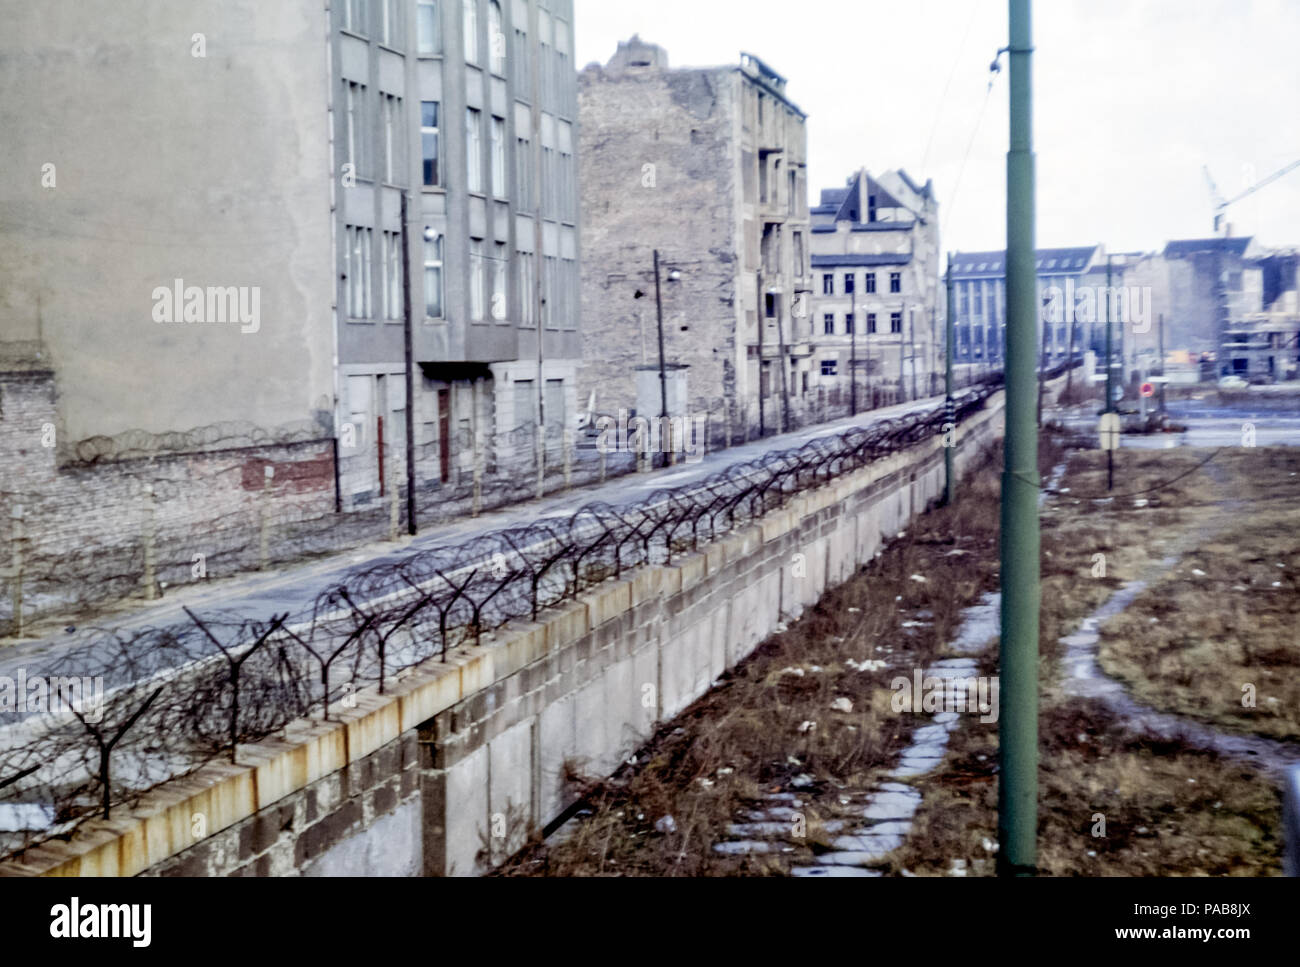 1960s view of Berlin Wall, West Germany,looking into East Germany, GDR, through barbed wire. Digital conversion of slide taken in 1964. - Stock Image